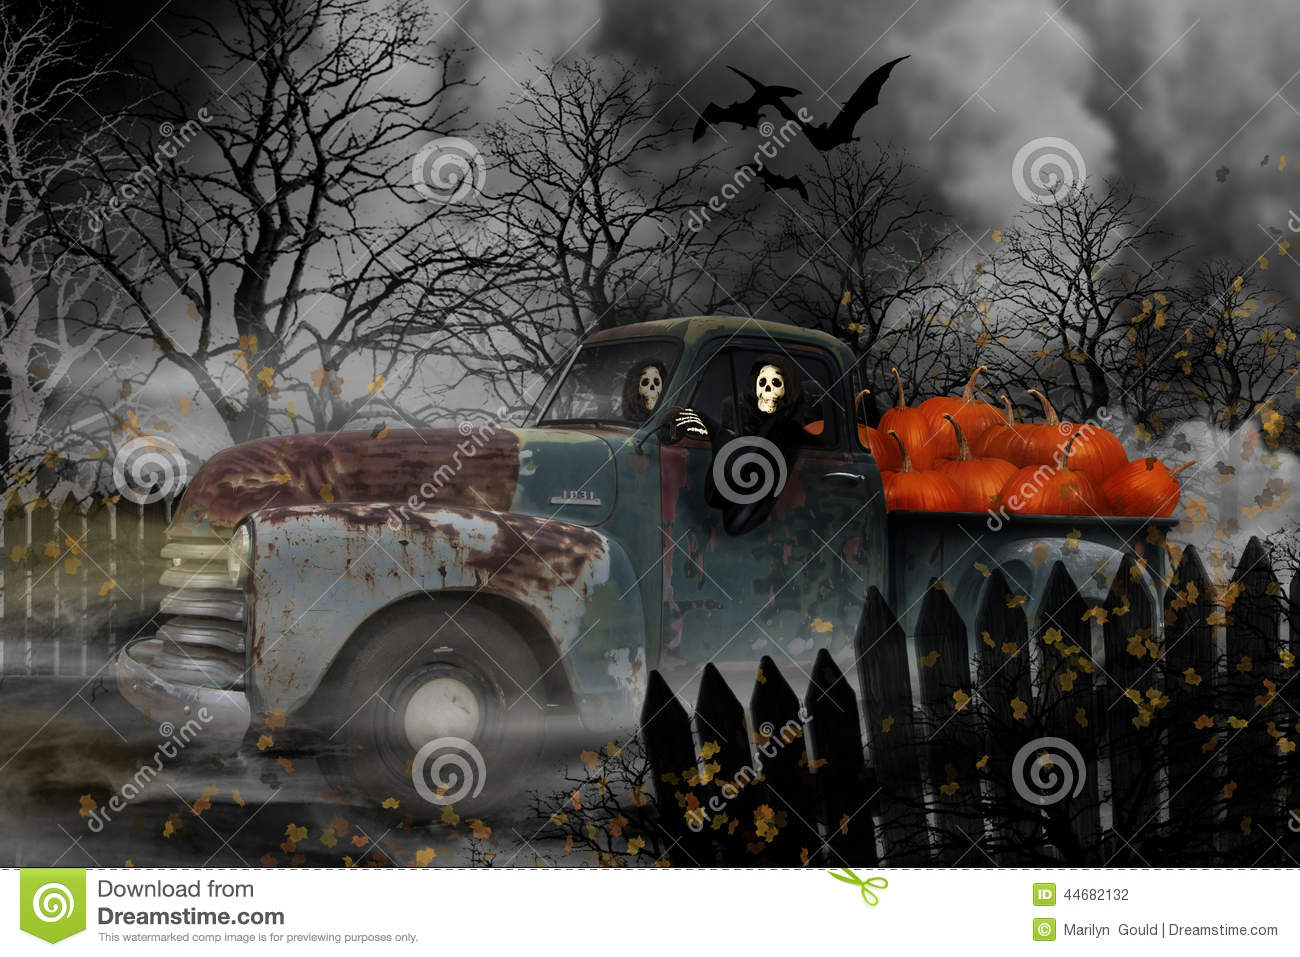 Fall Leaves And Pumpkins Wallpaper Halloween Ghouls In Old Chevy Truck Stock Illustration